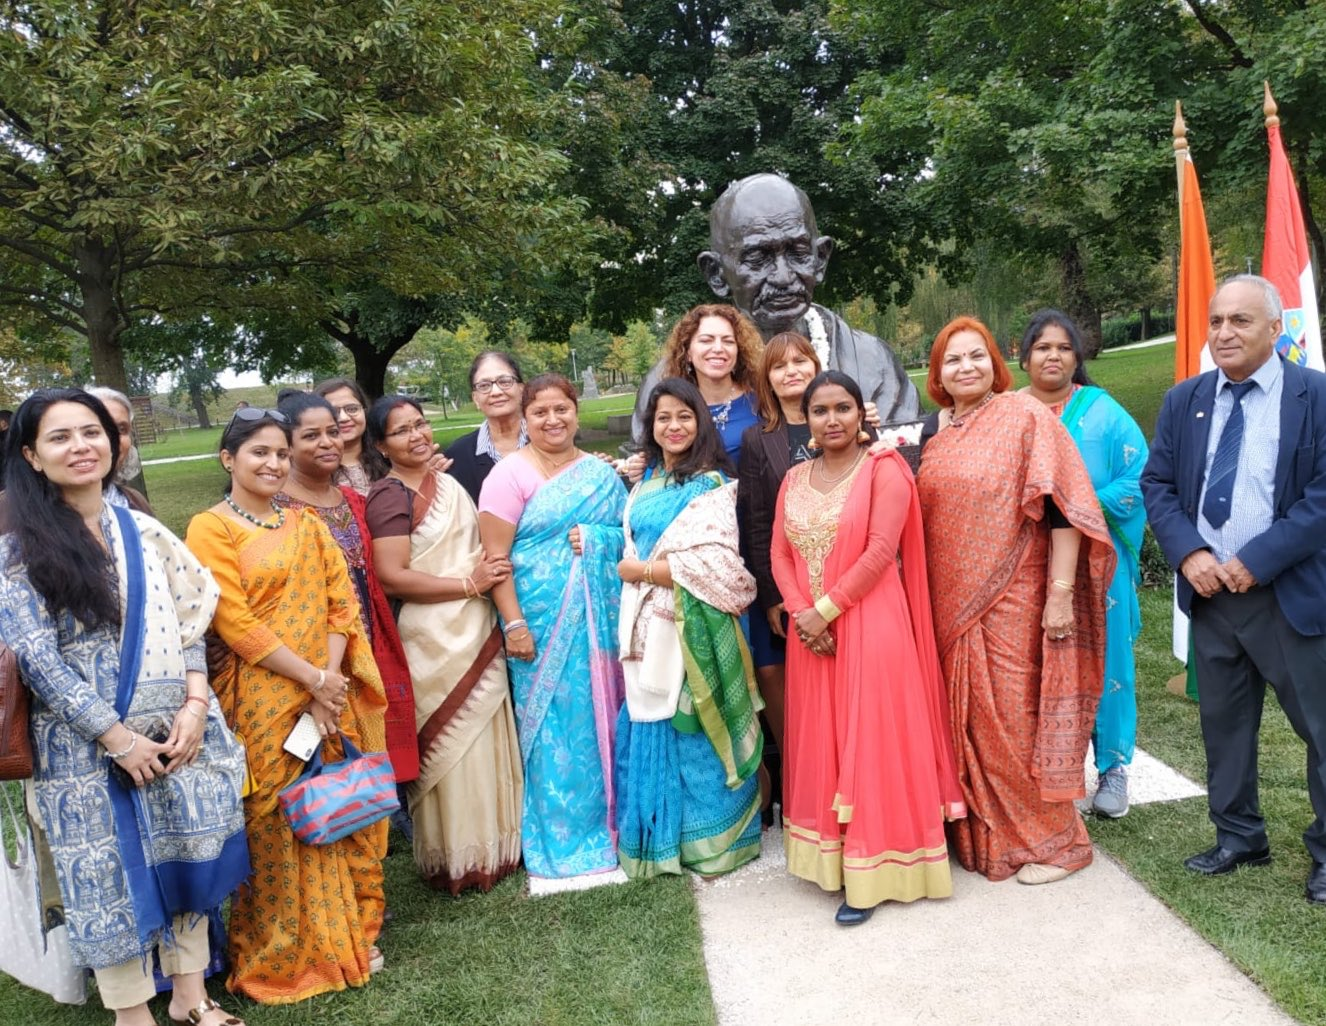 Indians in Croatia come together to celebrate Gandhi at 150. Photo courtesy: Twitter/@DeeptaNagpal